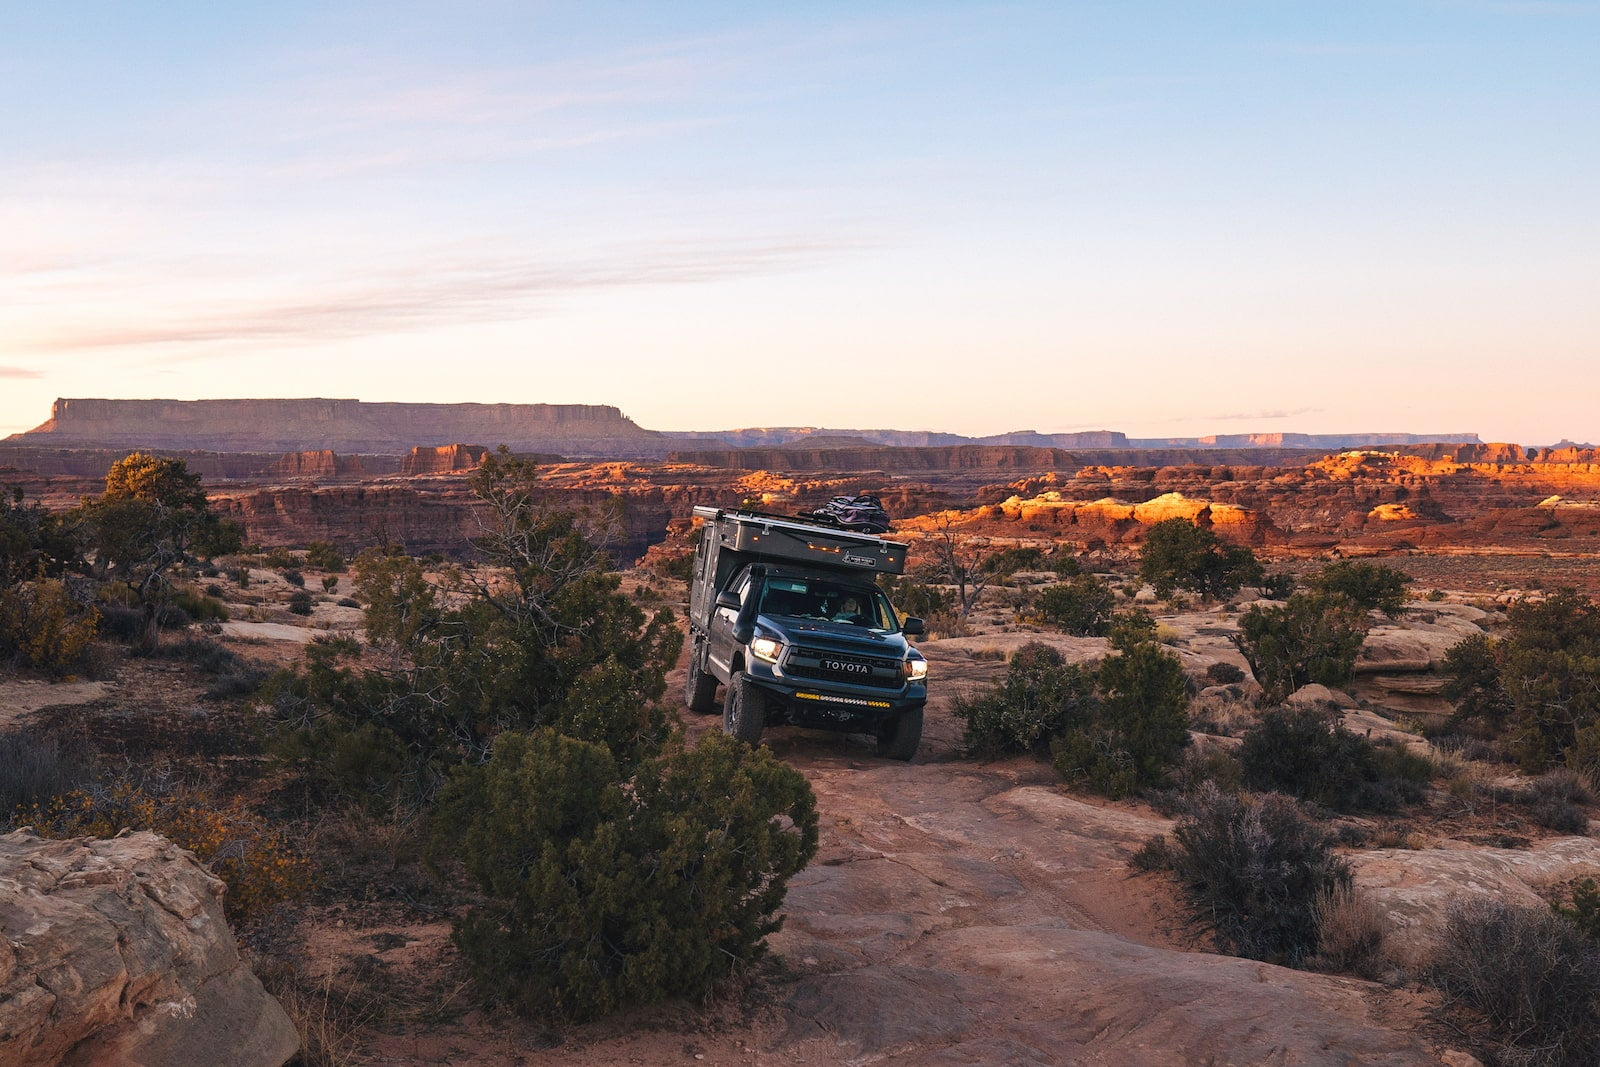 Bound for nowhere truck rig overlanding in a canyon in the southwest.